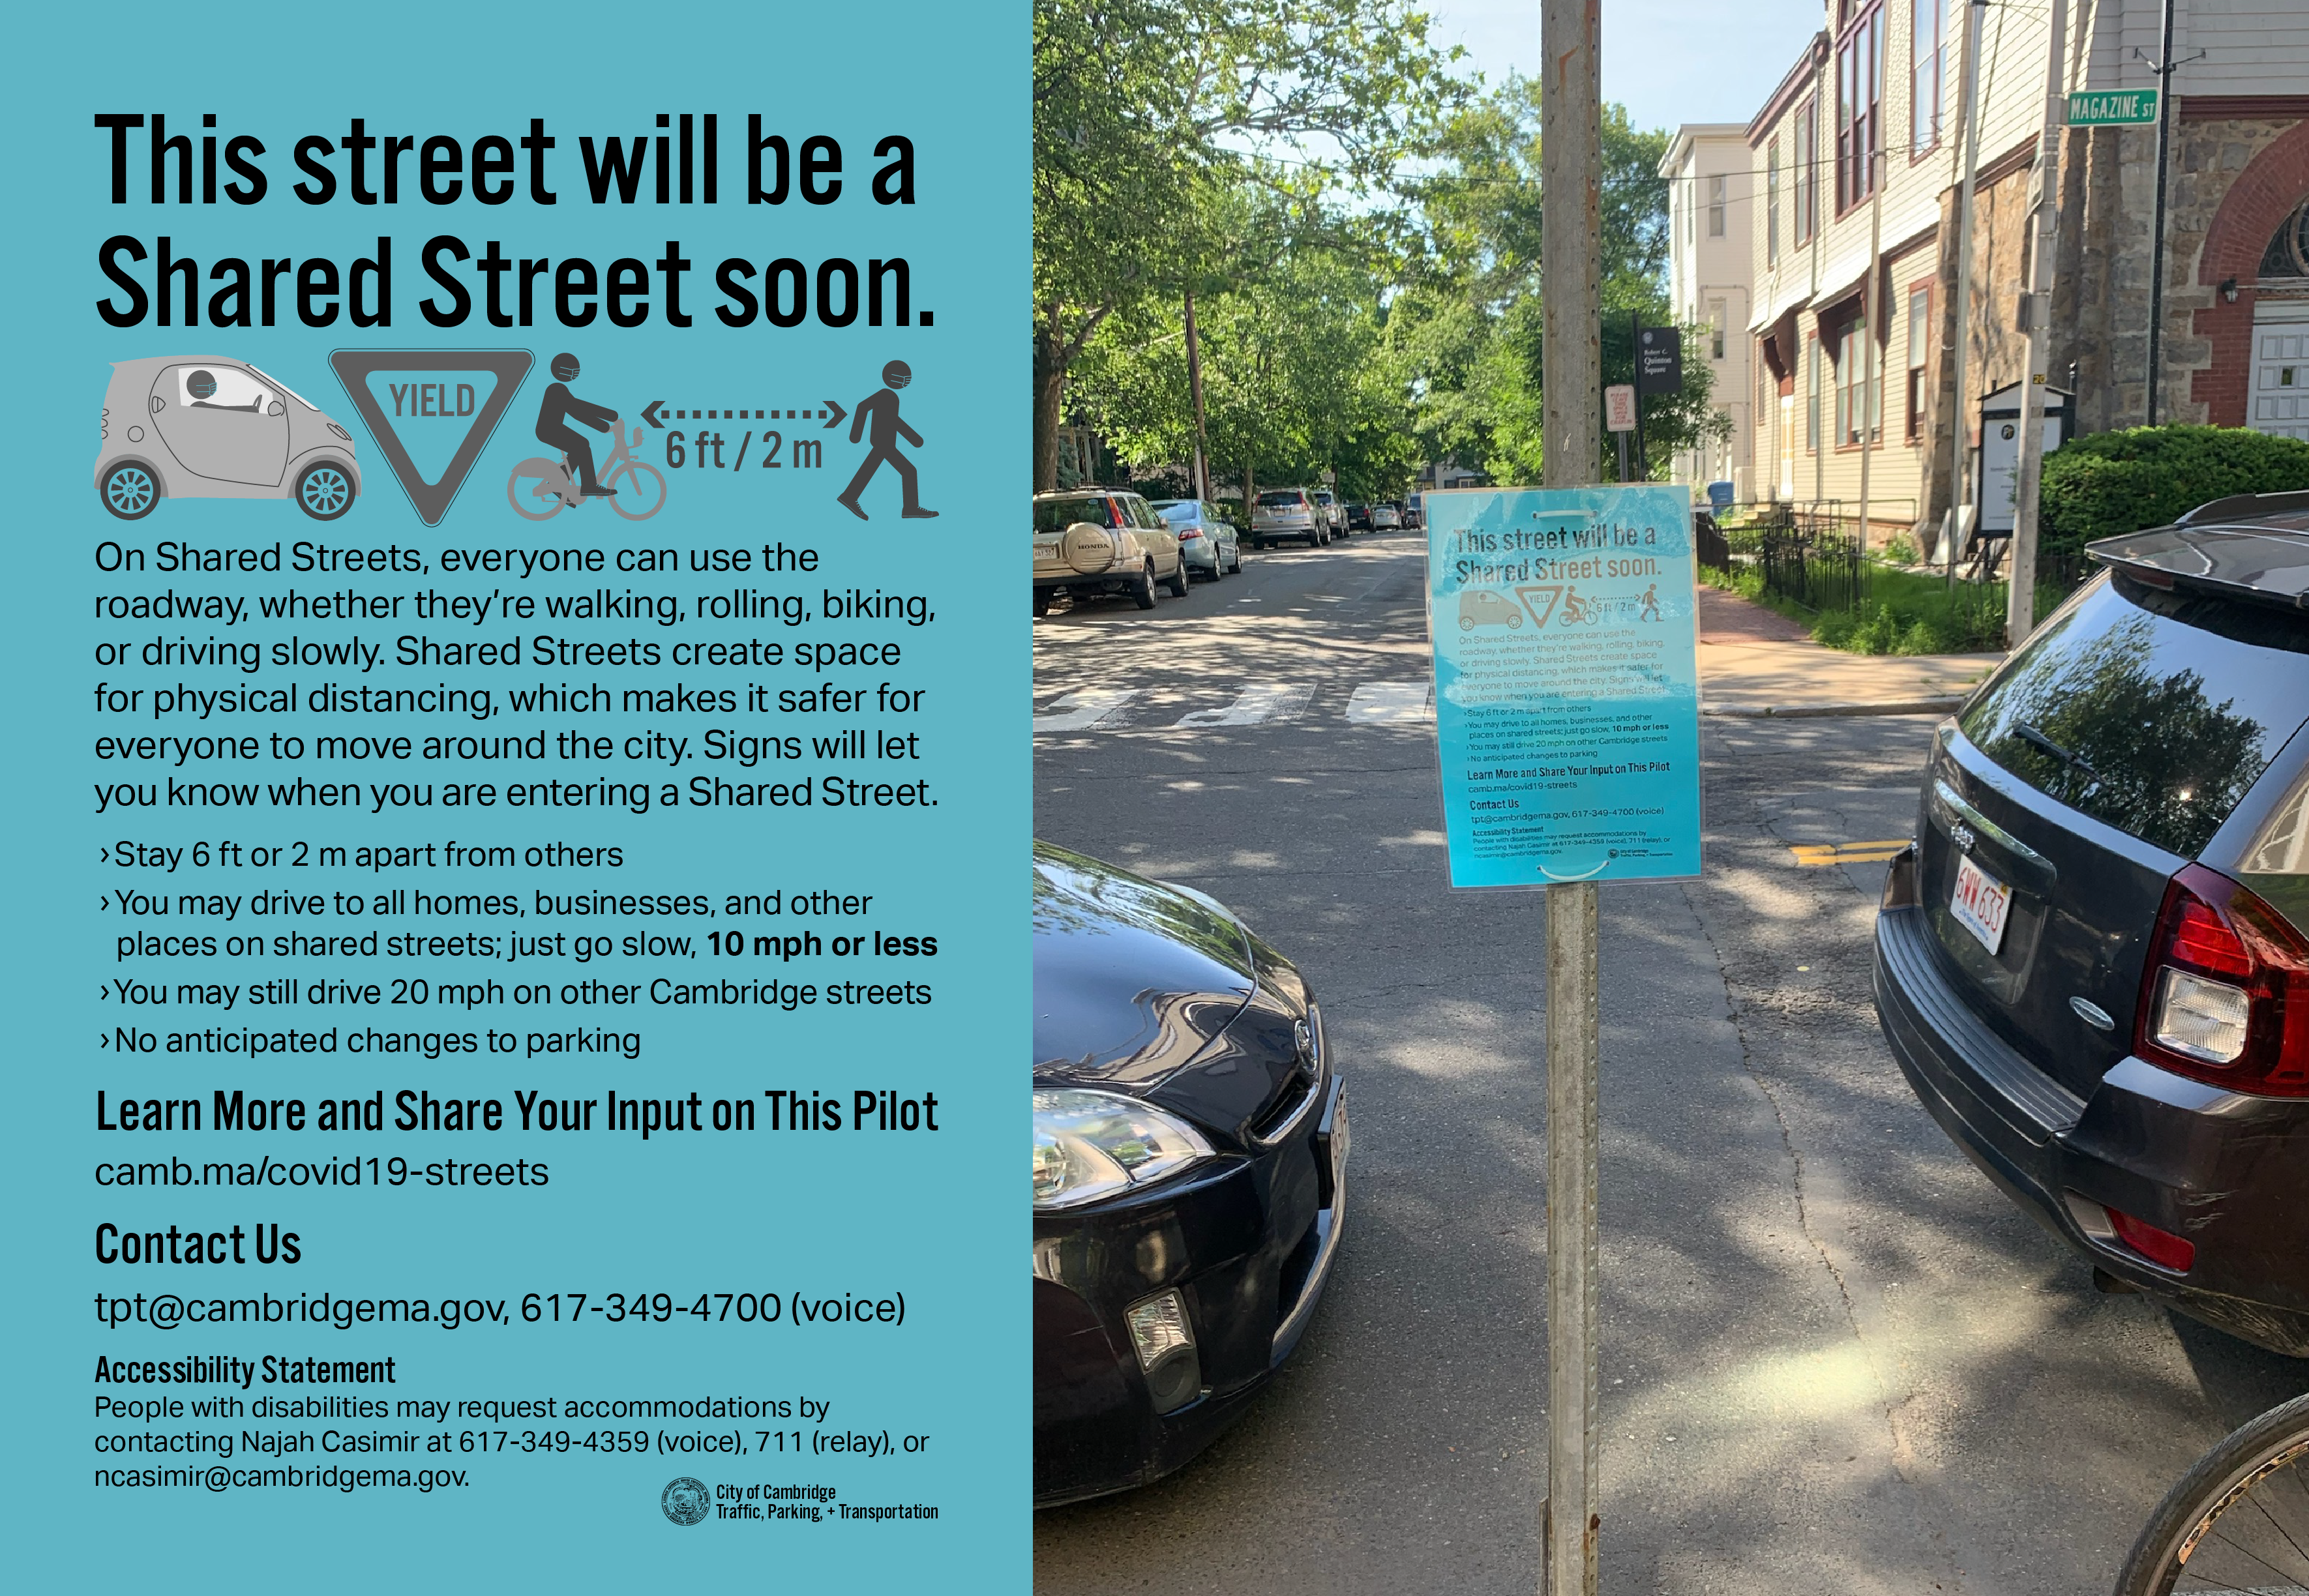 """Shared Streets Coming Soon"" and a photo of the sign posted on Magazine St."